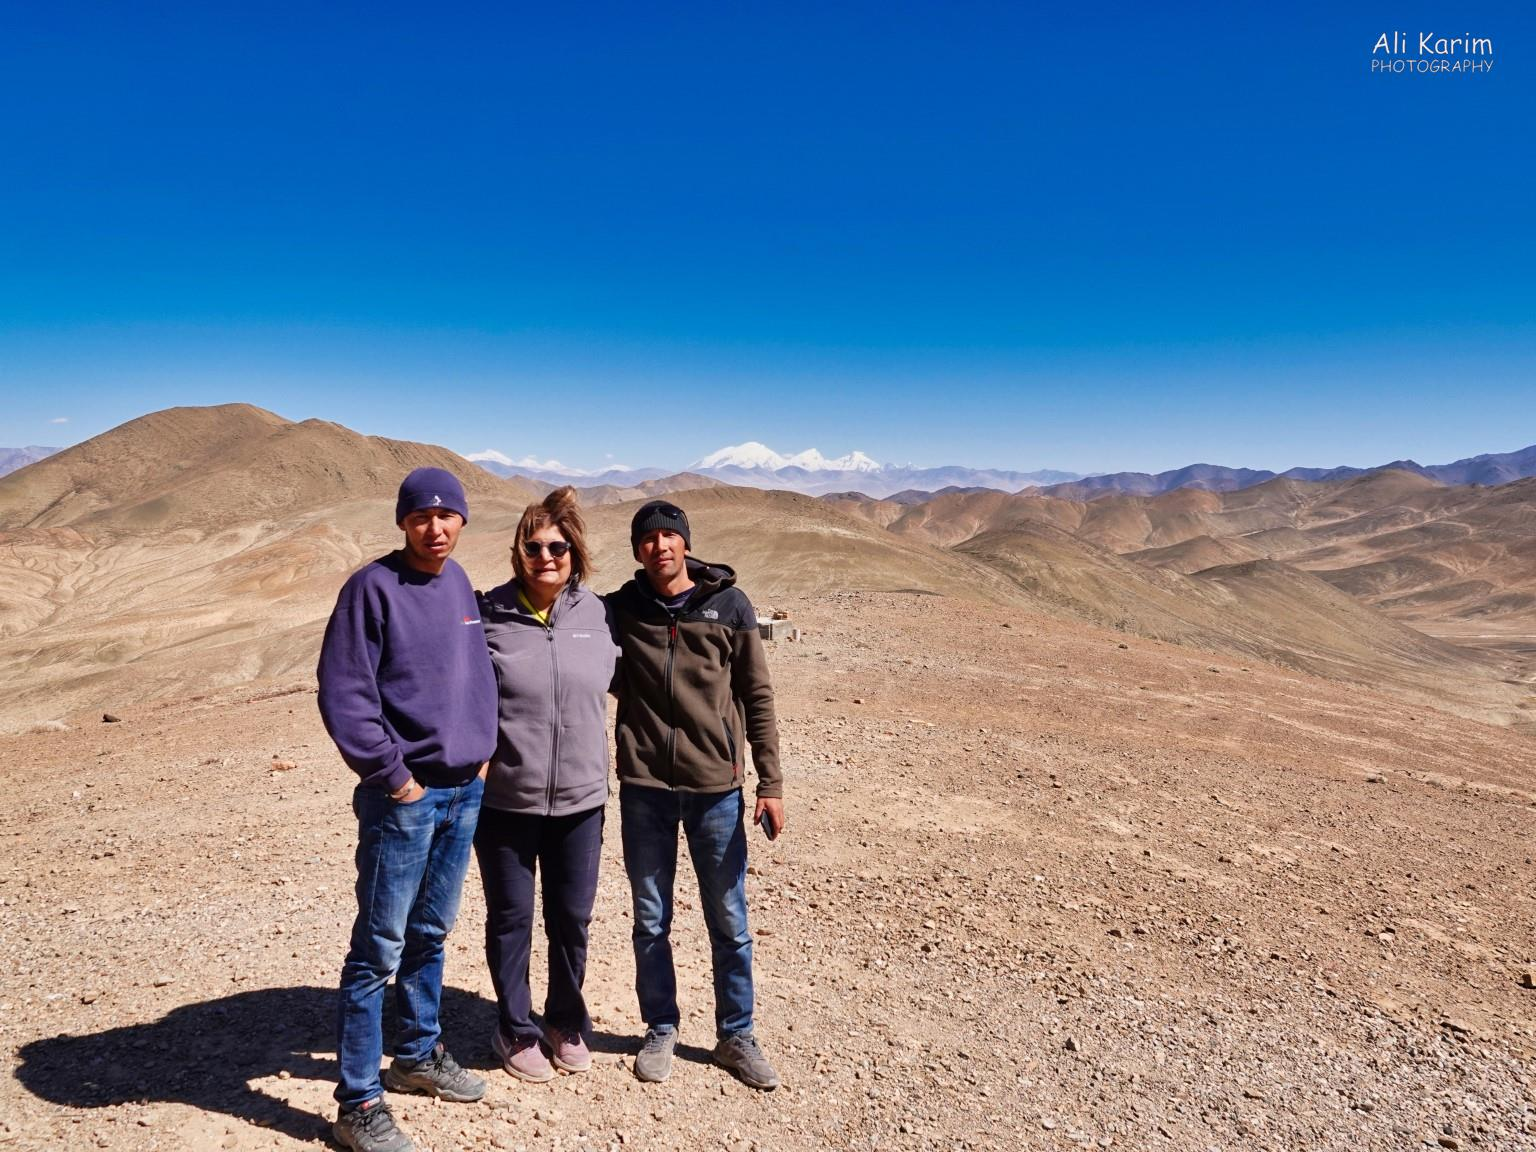 More Murghab & Alichur, Tajikistan, At Shorbulak Soviet Observatory with Sherali and Ahmadali. 14,100ft, so it was cool, but no snow. The white peaks in the background are in Xinjiang, China